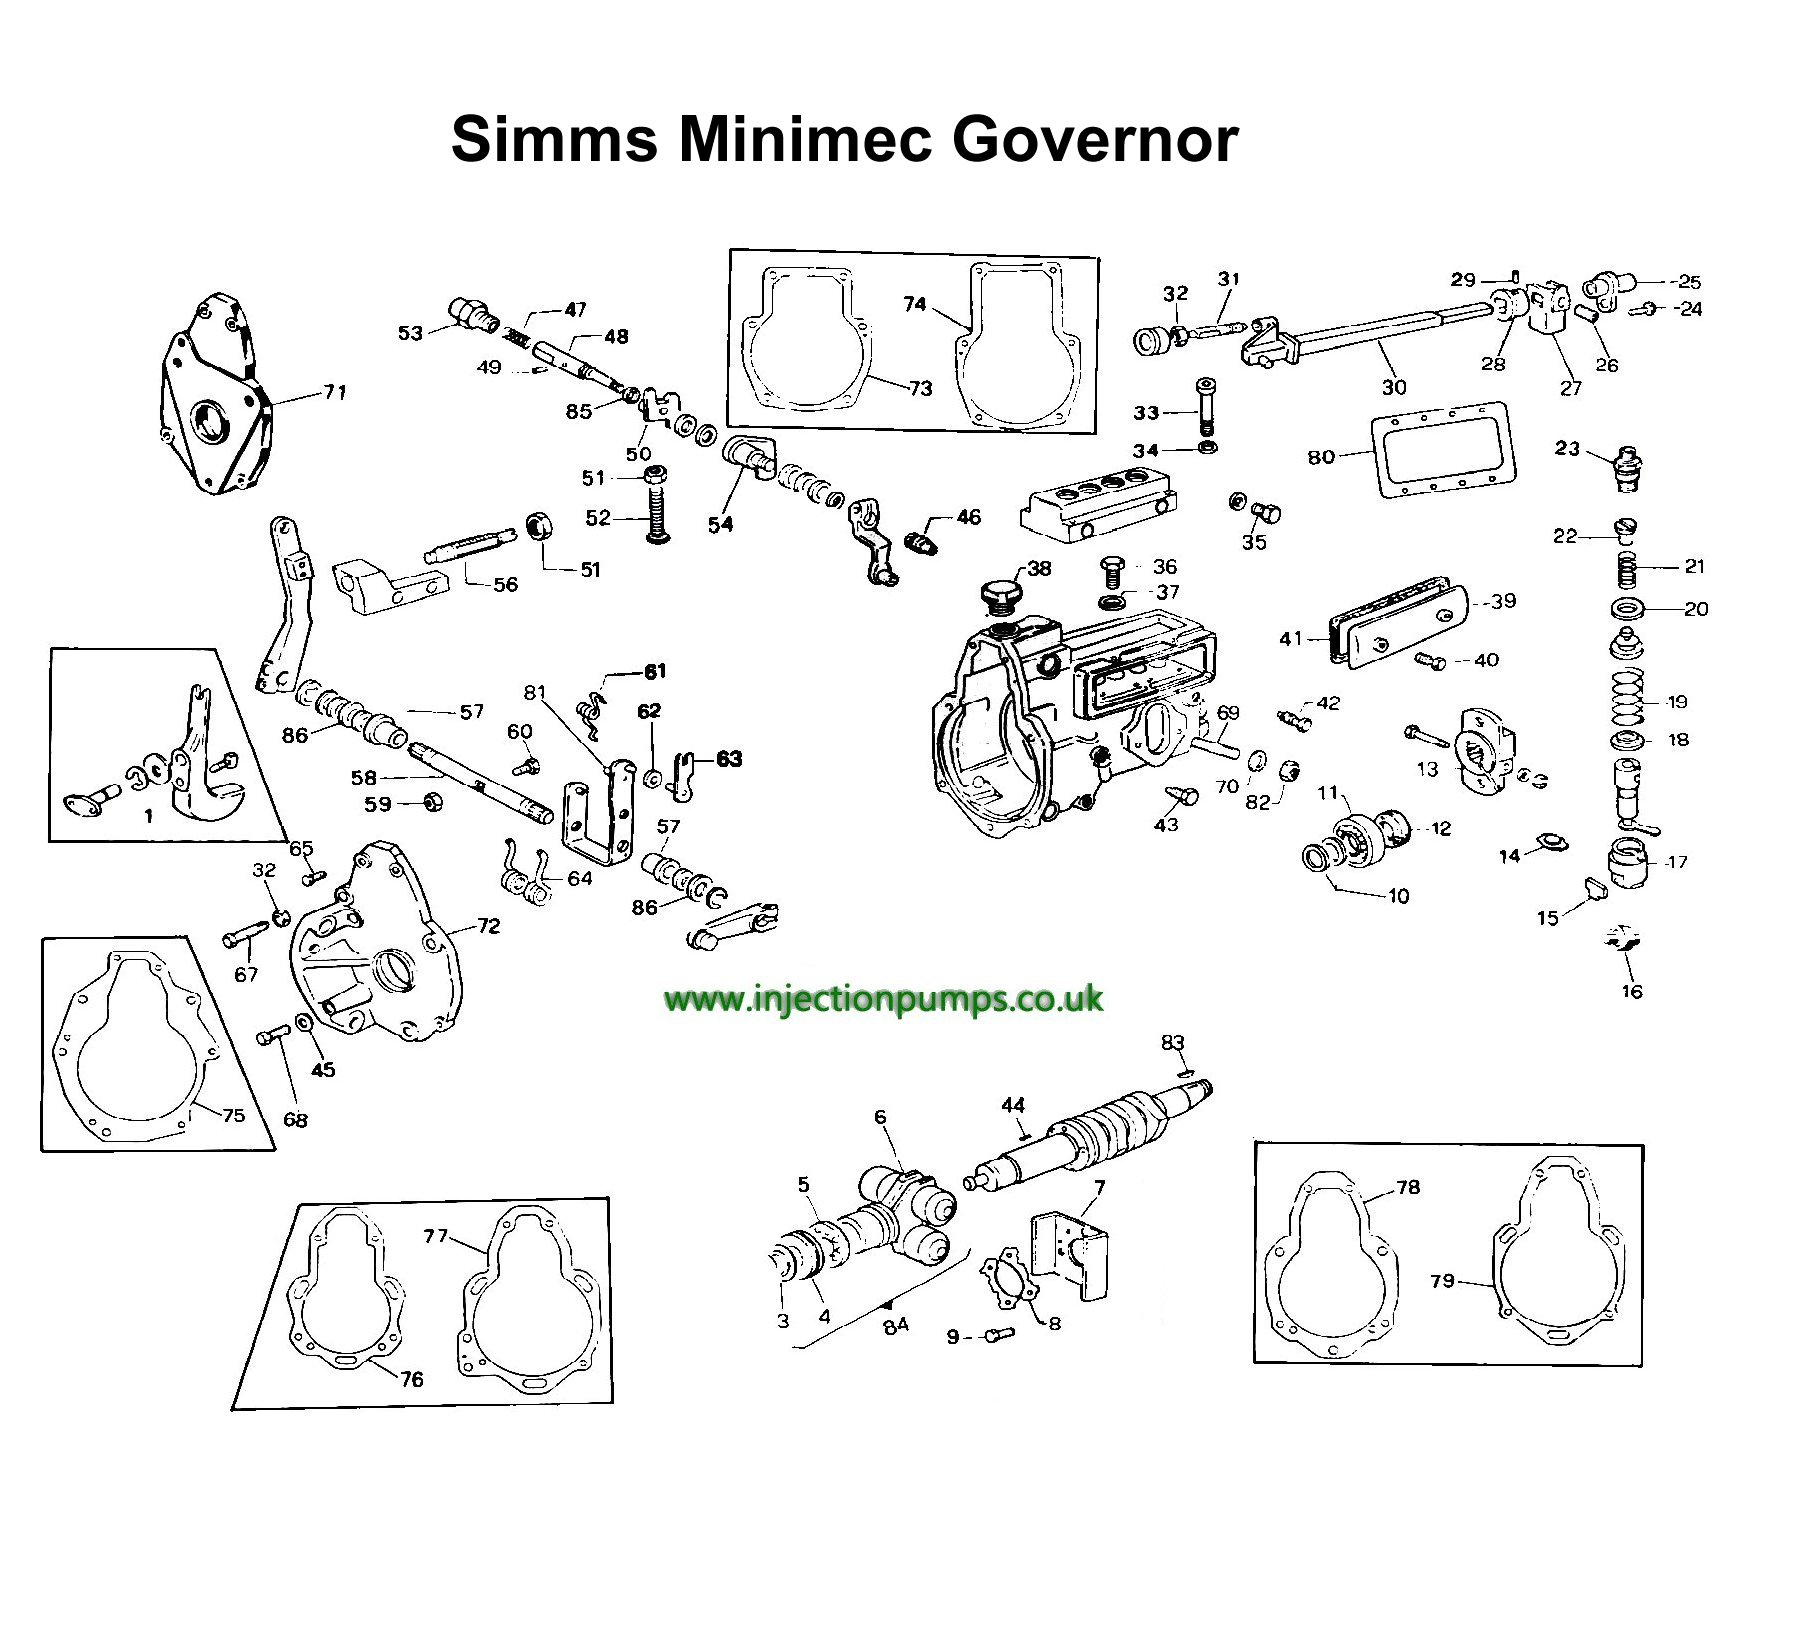 Cav Simms Minimec Governor Exploded Diagram on David Brown Parts Diagram